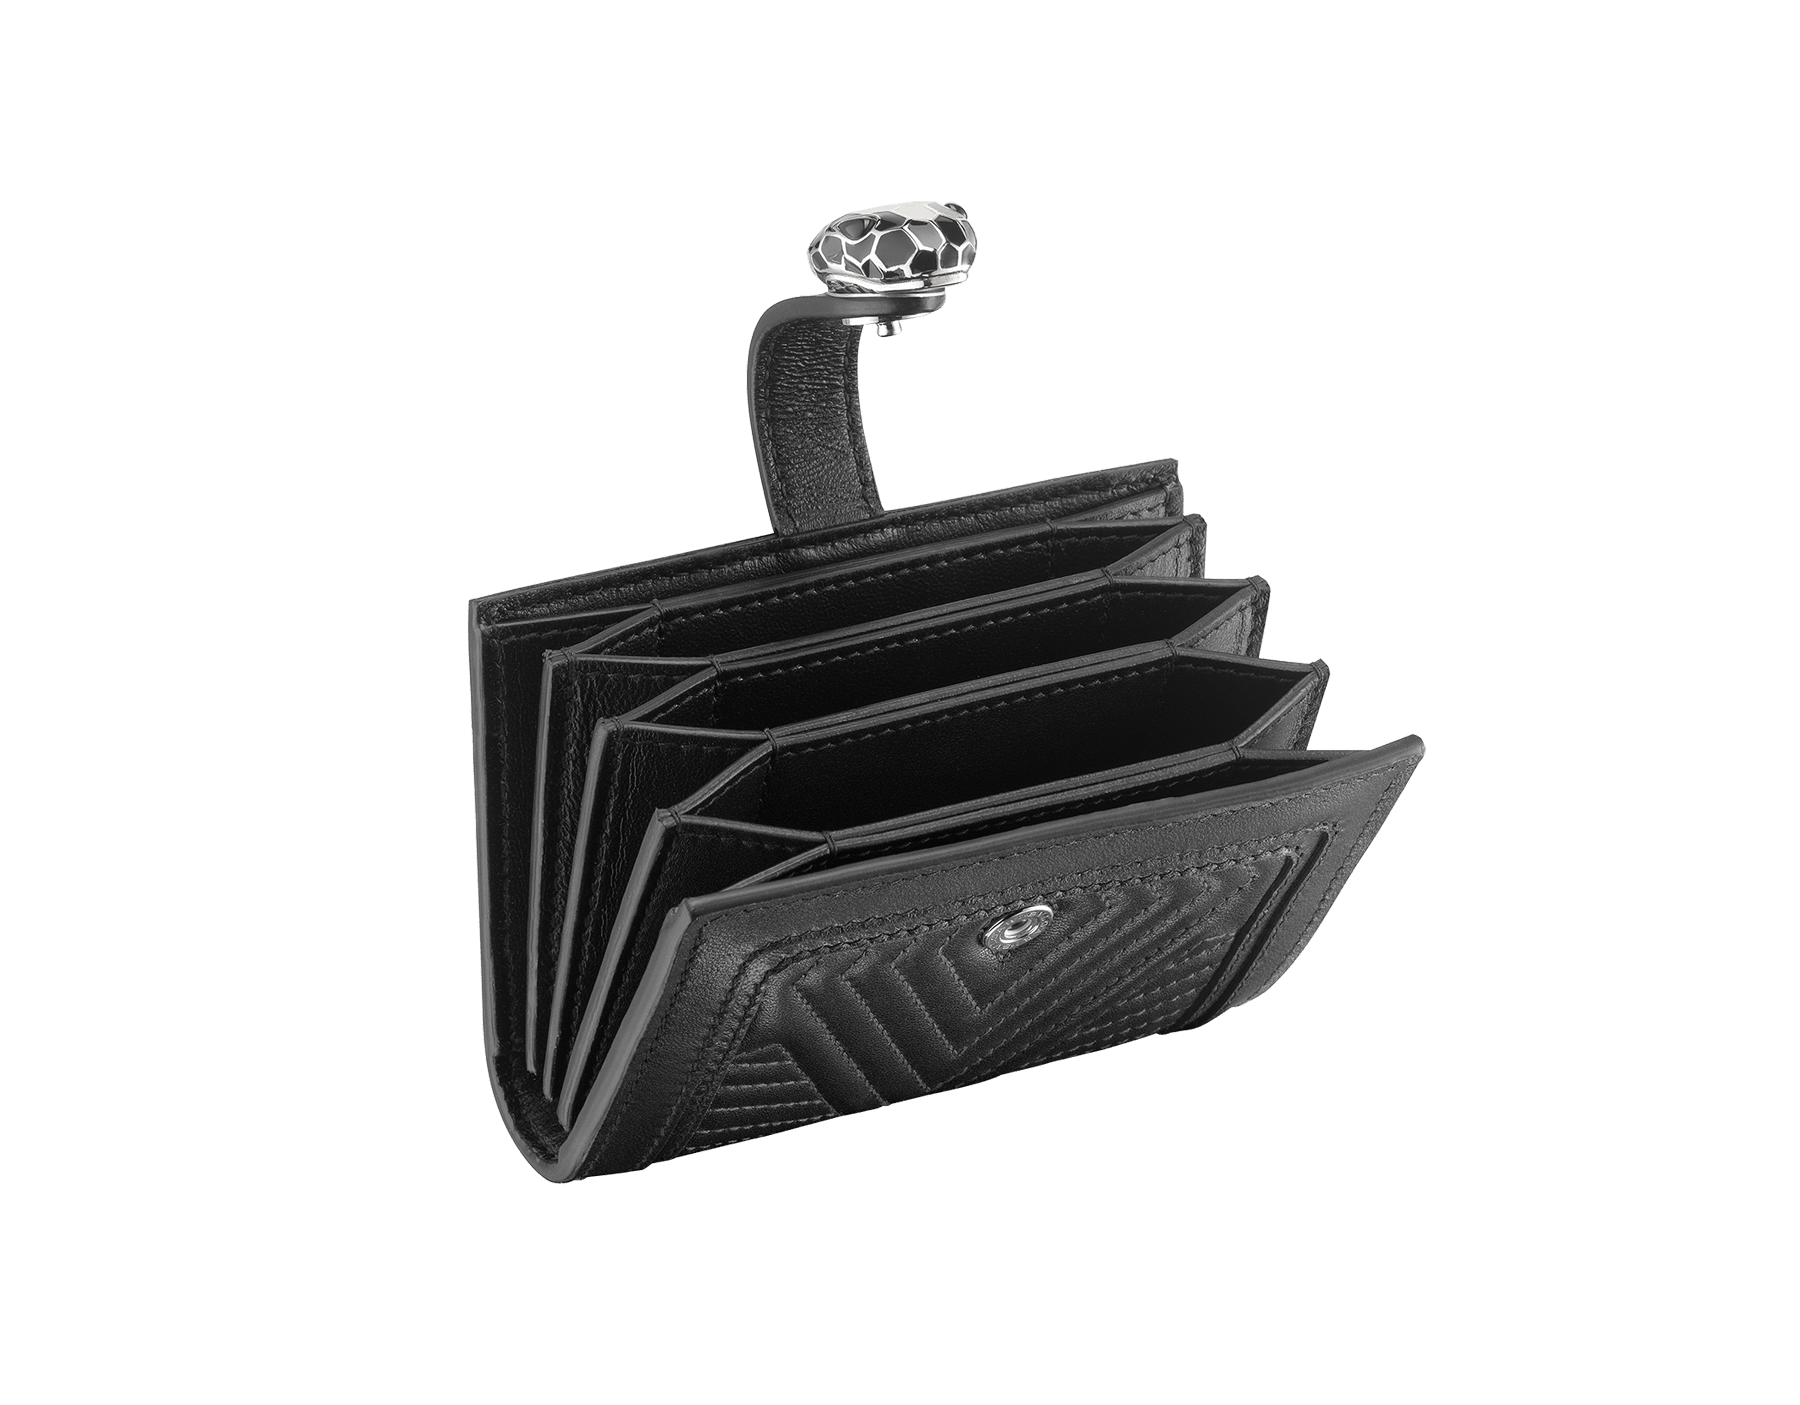 Serpenti Diamond Blast compact credit card holder in black matelassé nappa leather and black calf leather. Snakehead closure with black and white enamel and black enamel eyes. 288193 image 2